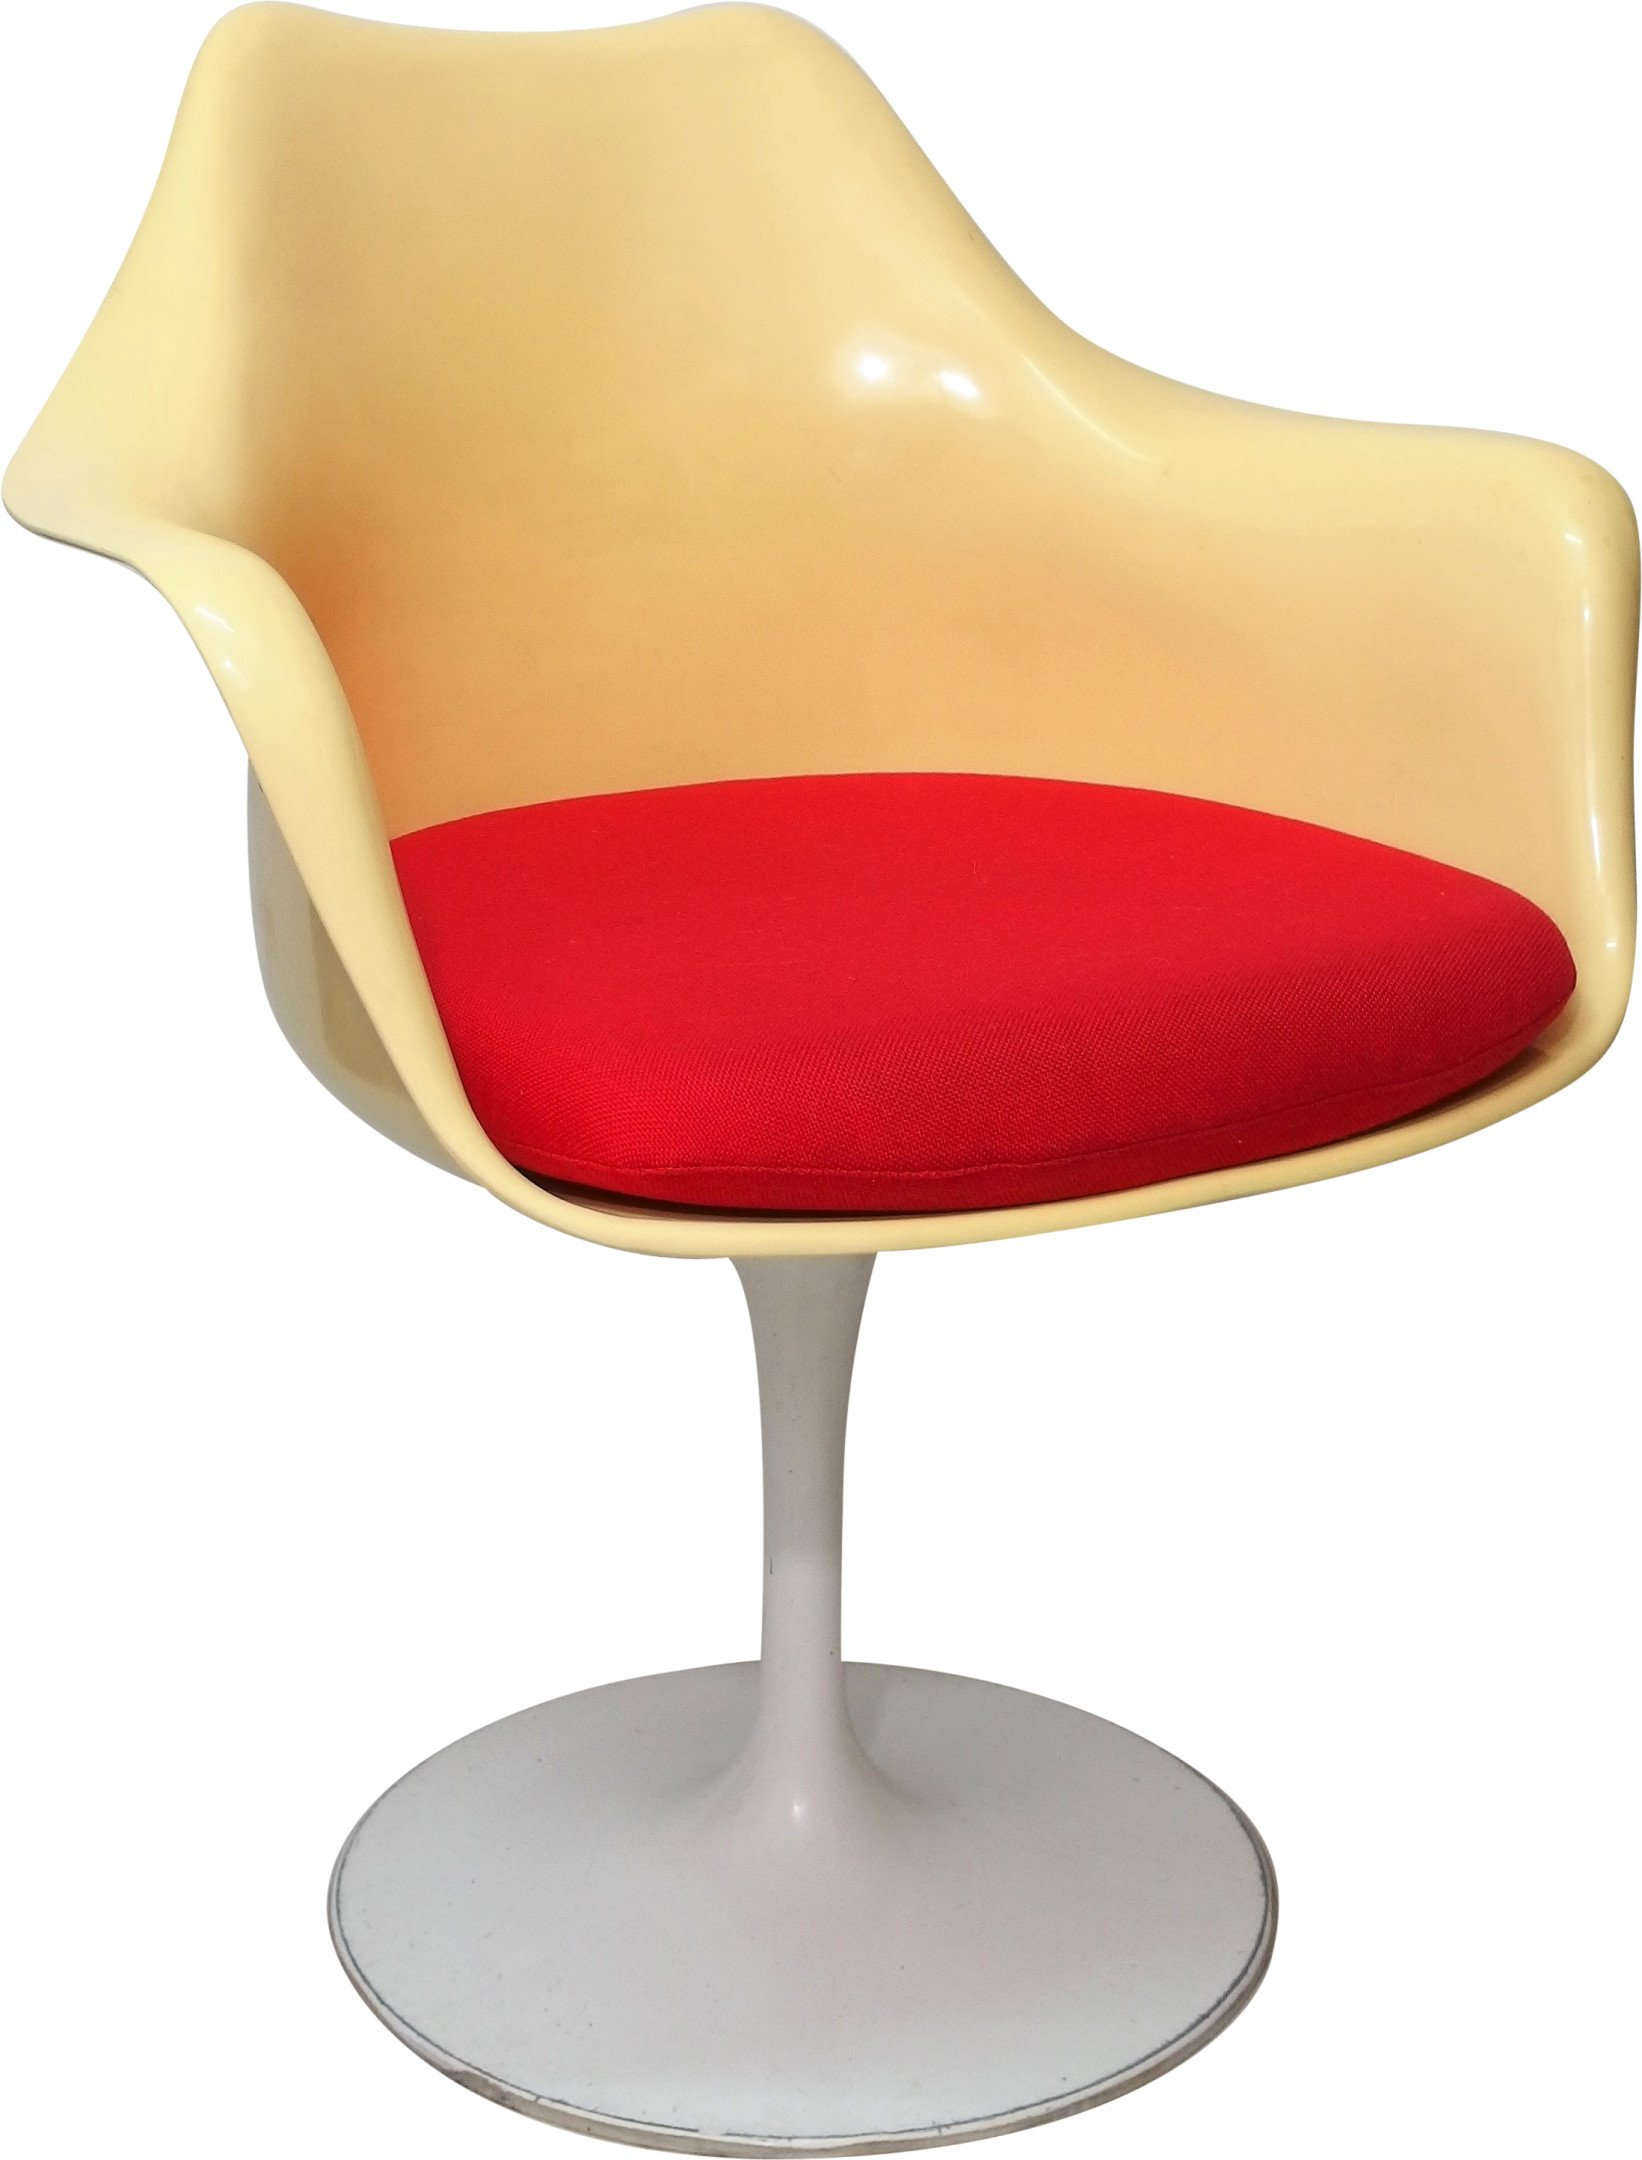 Swivel Armchair Tulip, 1980s